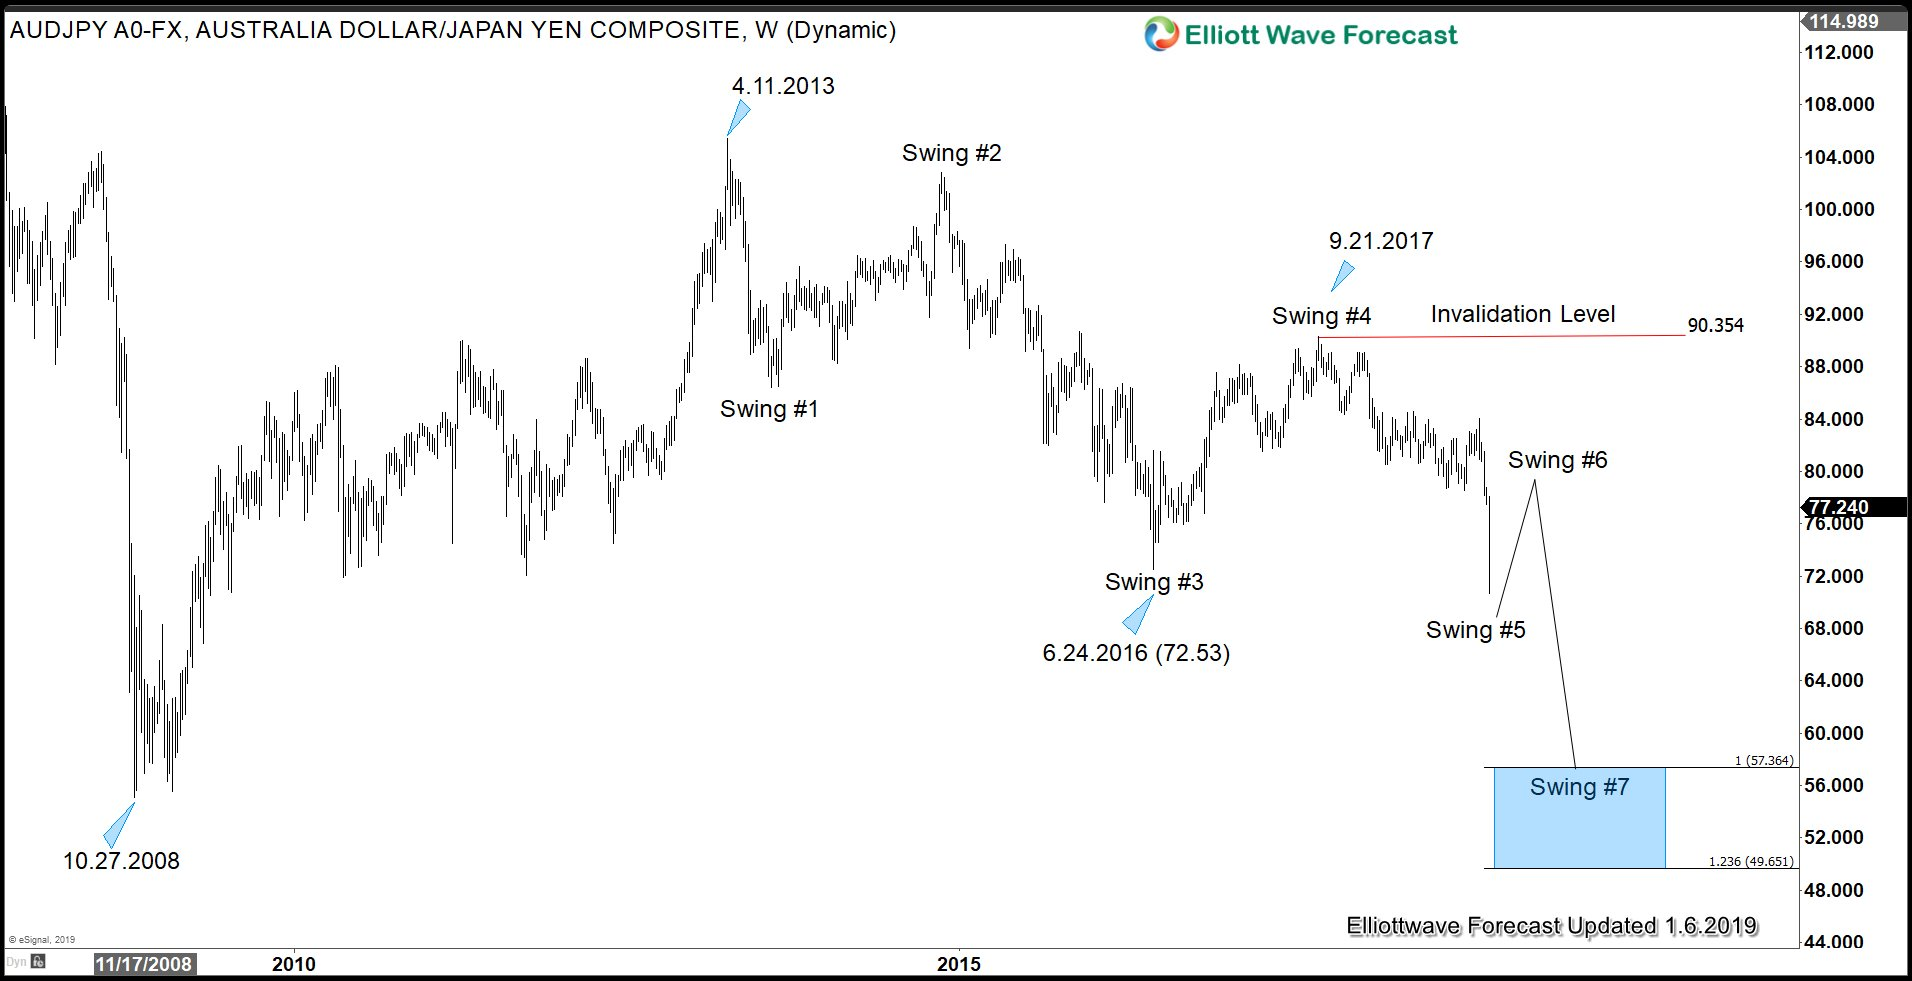 Yen Elliott Wave Sequence Outlook against AUD in 2019 favors more downside